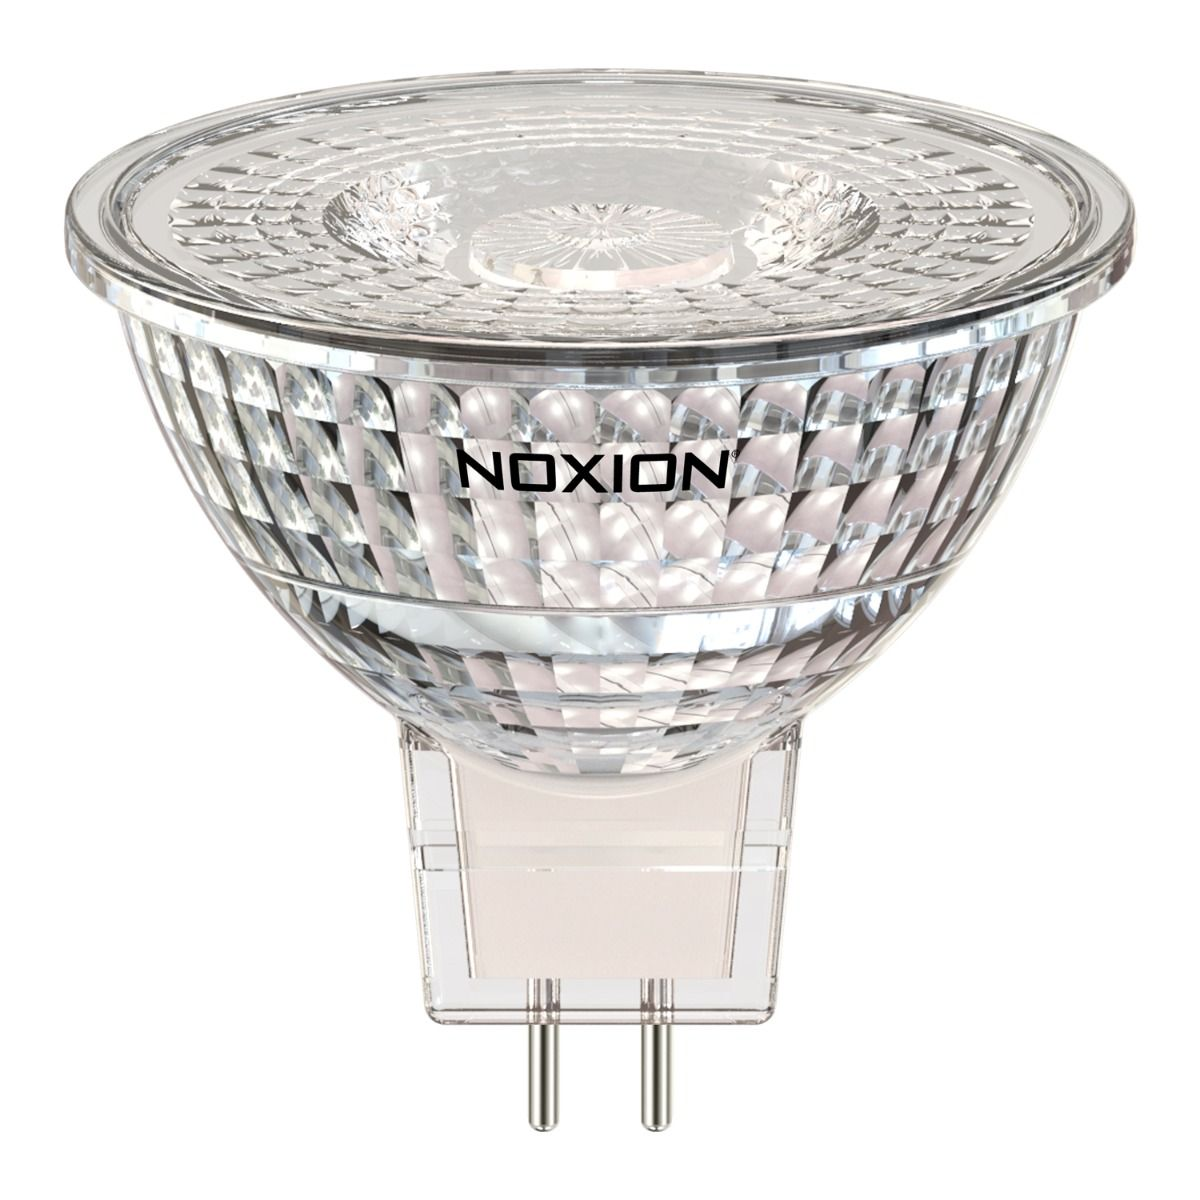 Noxion Spot LED GU5.3 5W 840 36D 490lm | Dimmable - Blanc Froid - Substitut 35W